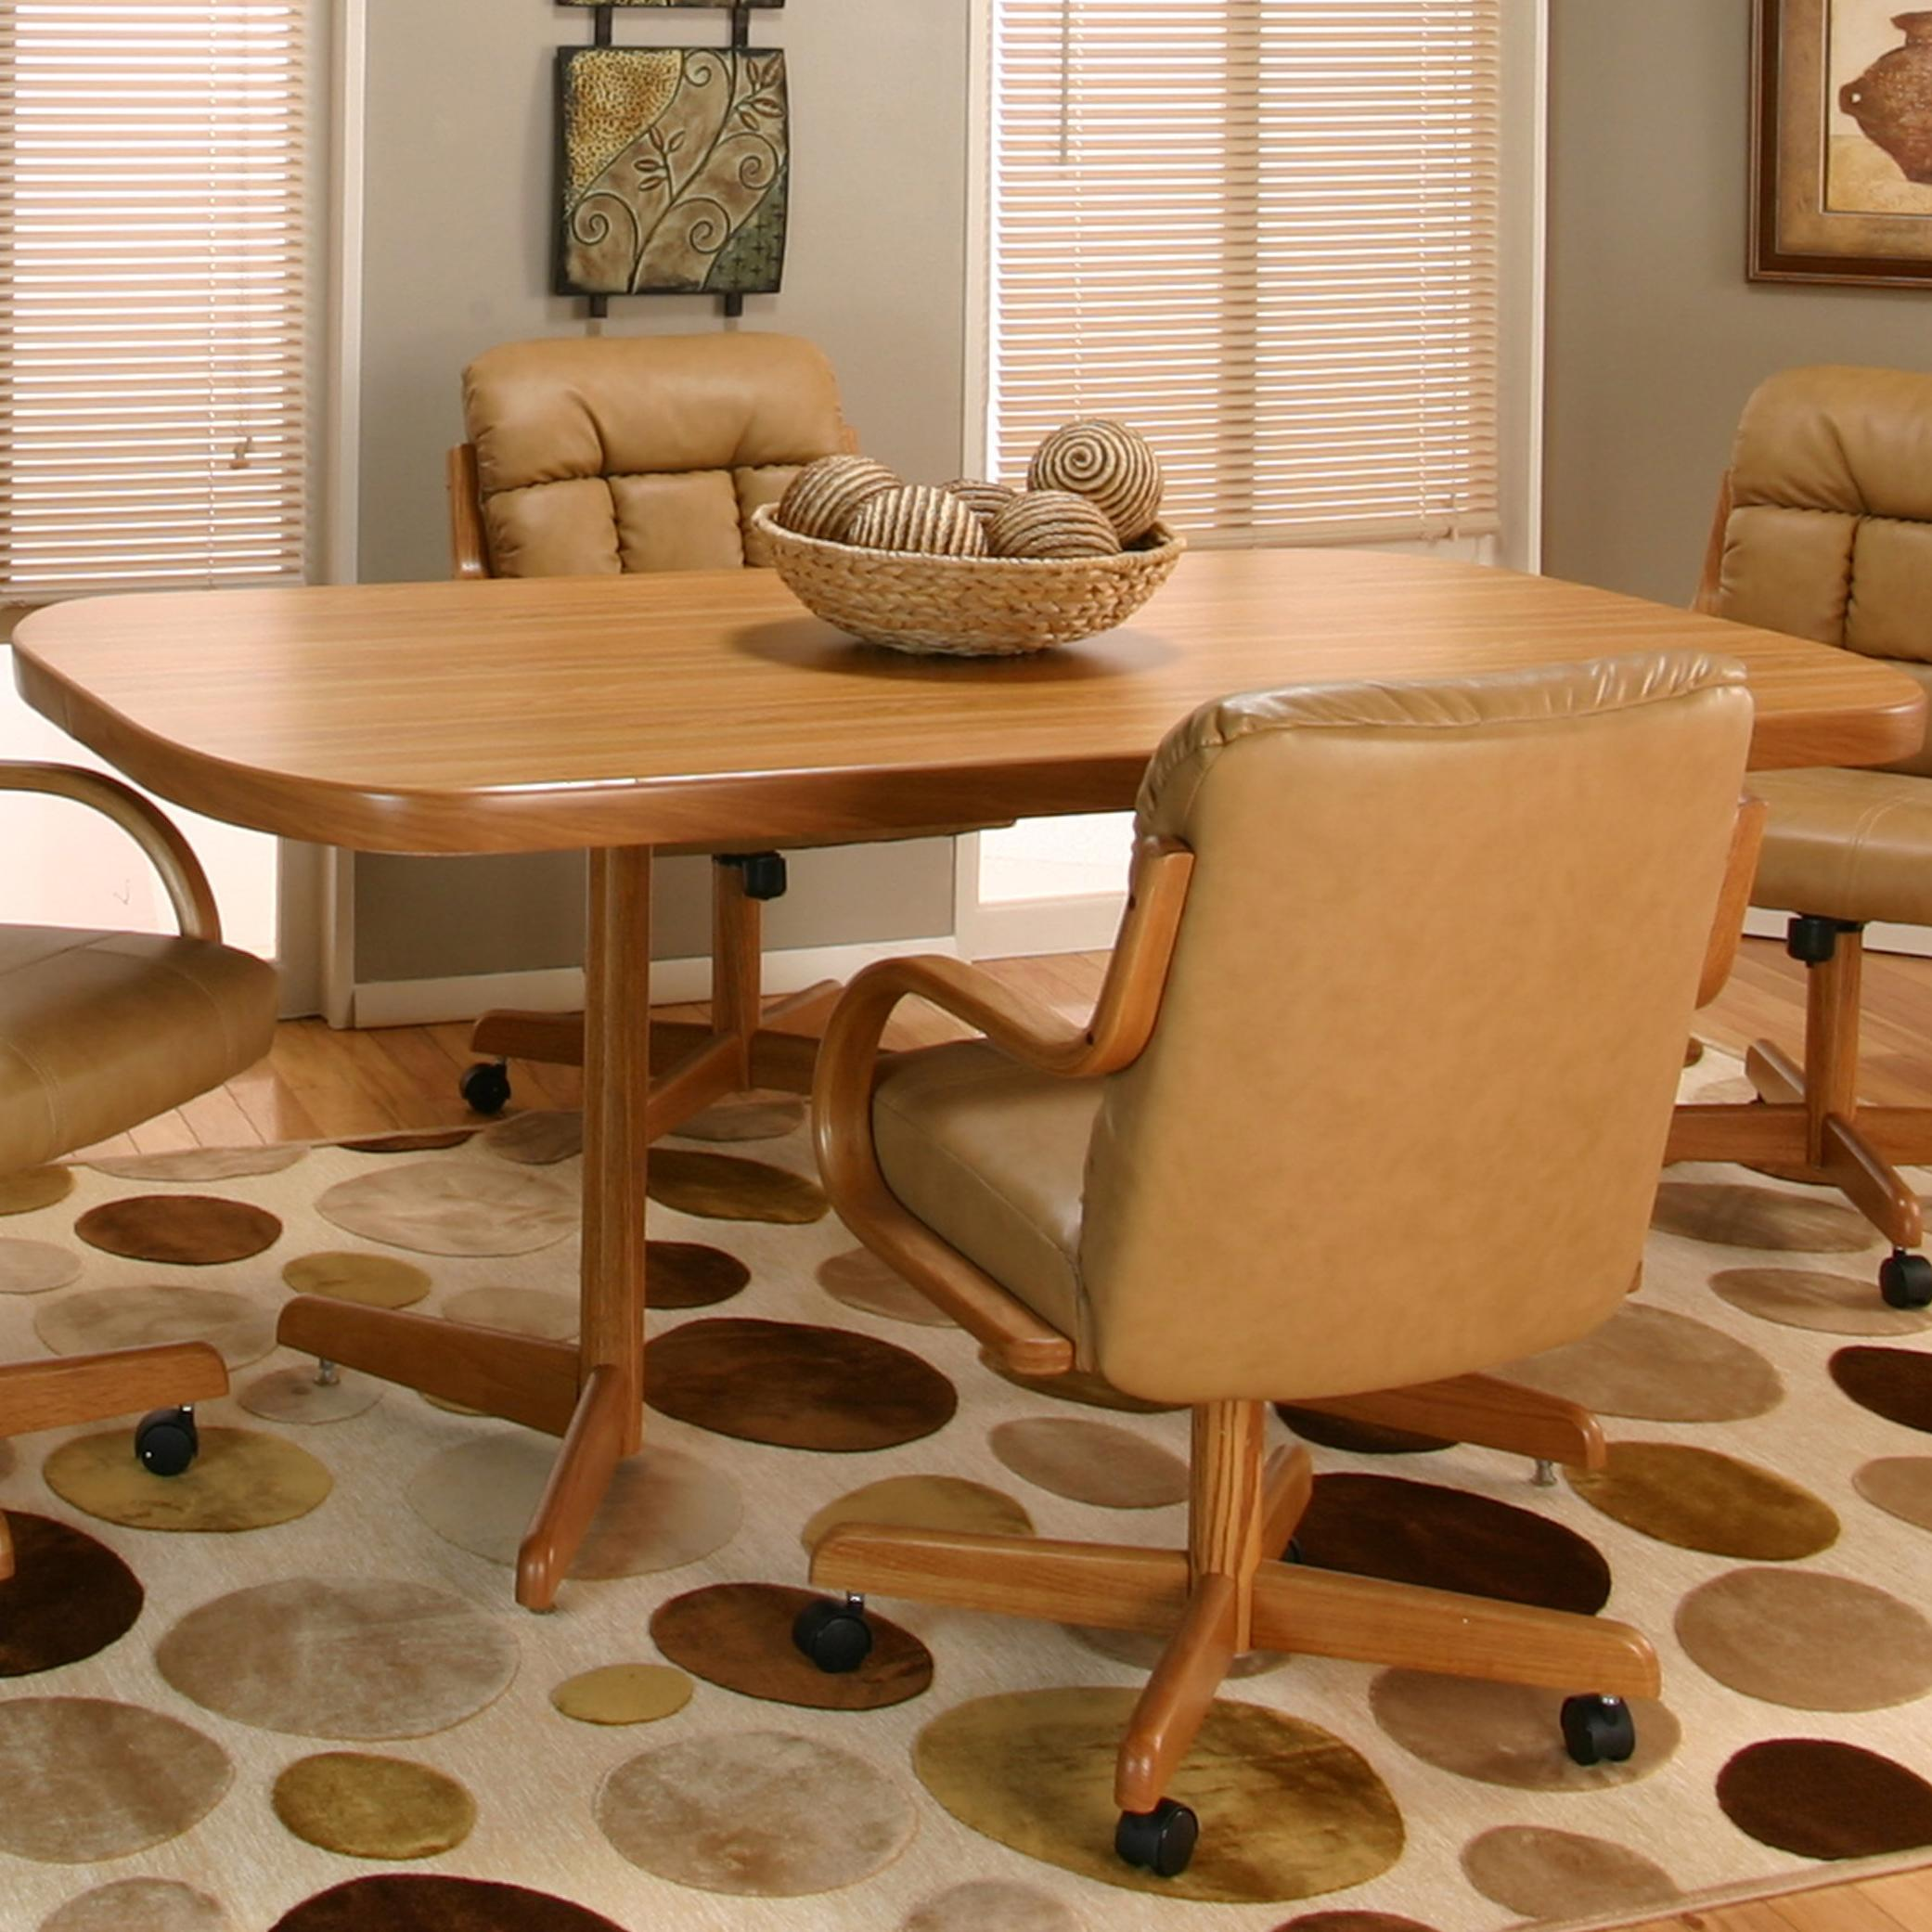 Cramco Motion - Atwood Bow-End Rustic Oak Laminate Table by Cramco, Inc at Value City Furniture